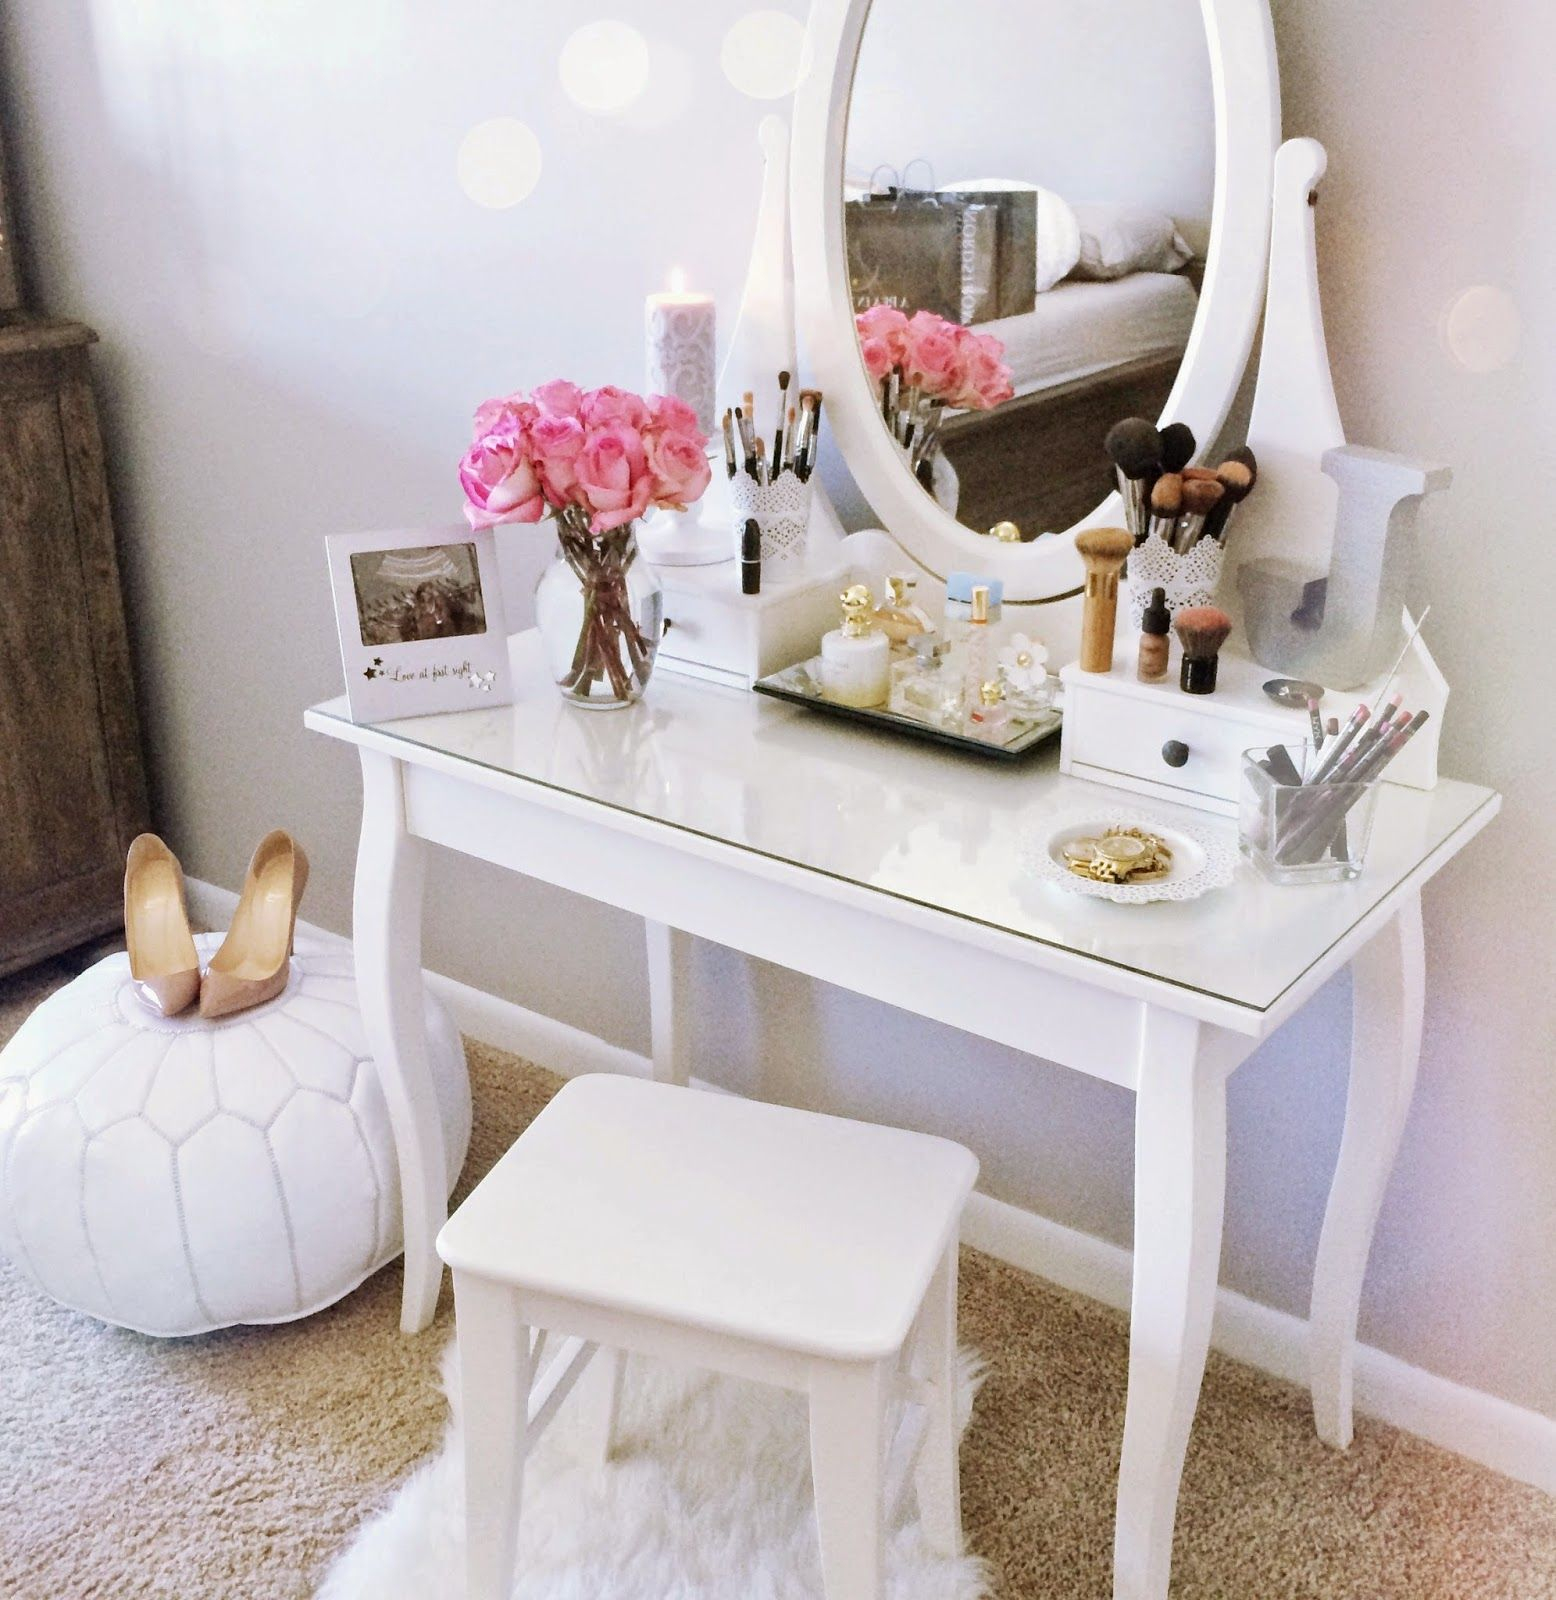 I like this vanity plus the way she has it styled a spoonful of